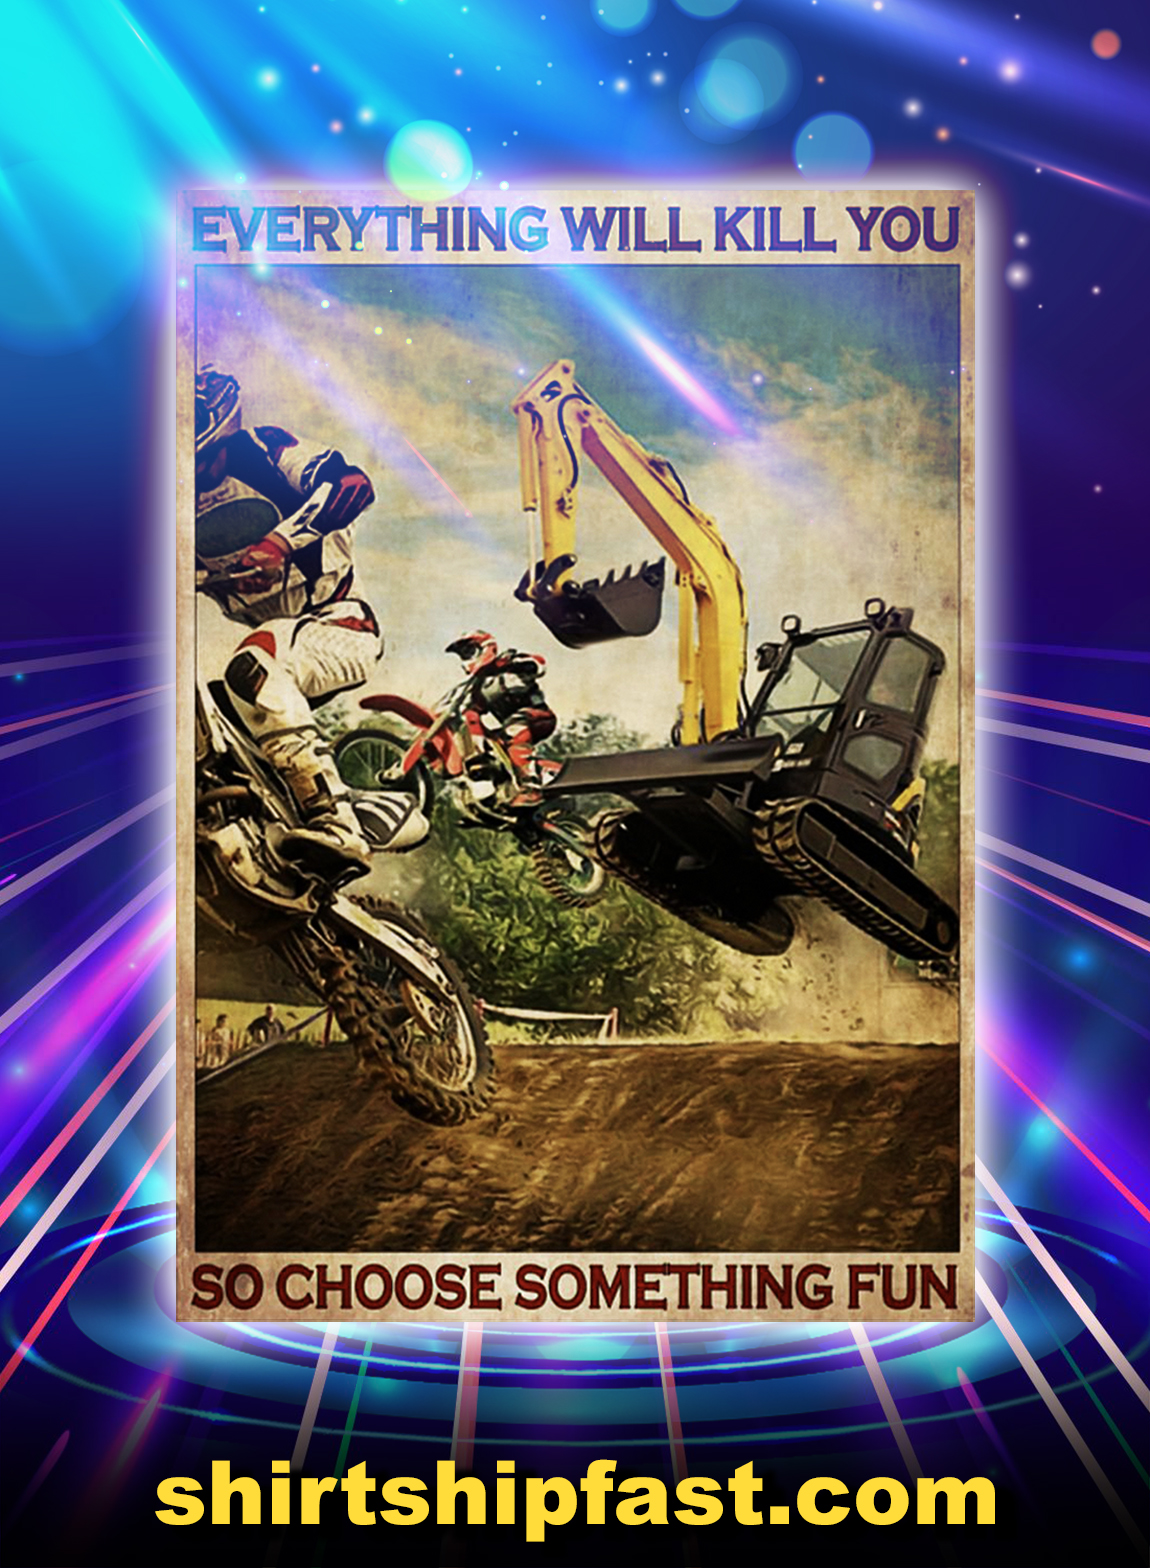 Motocross excavator everything will kill you so choose something fun poster - A2